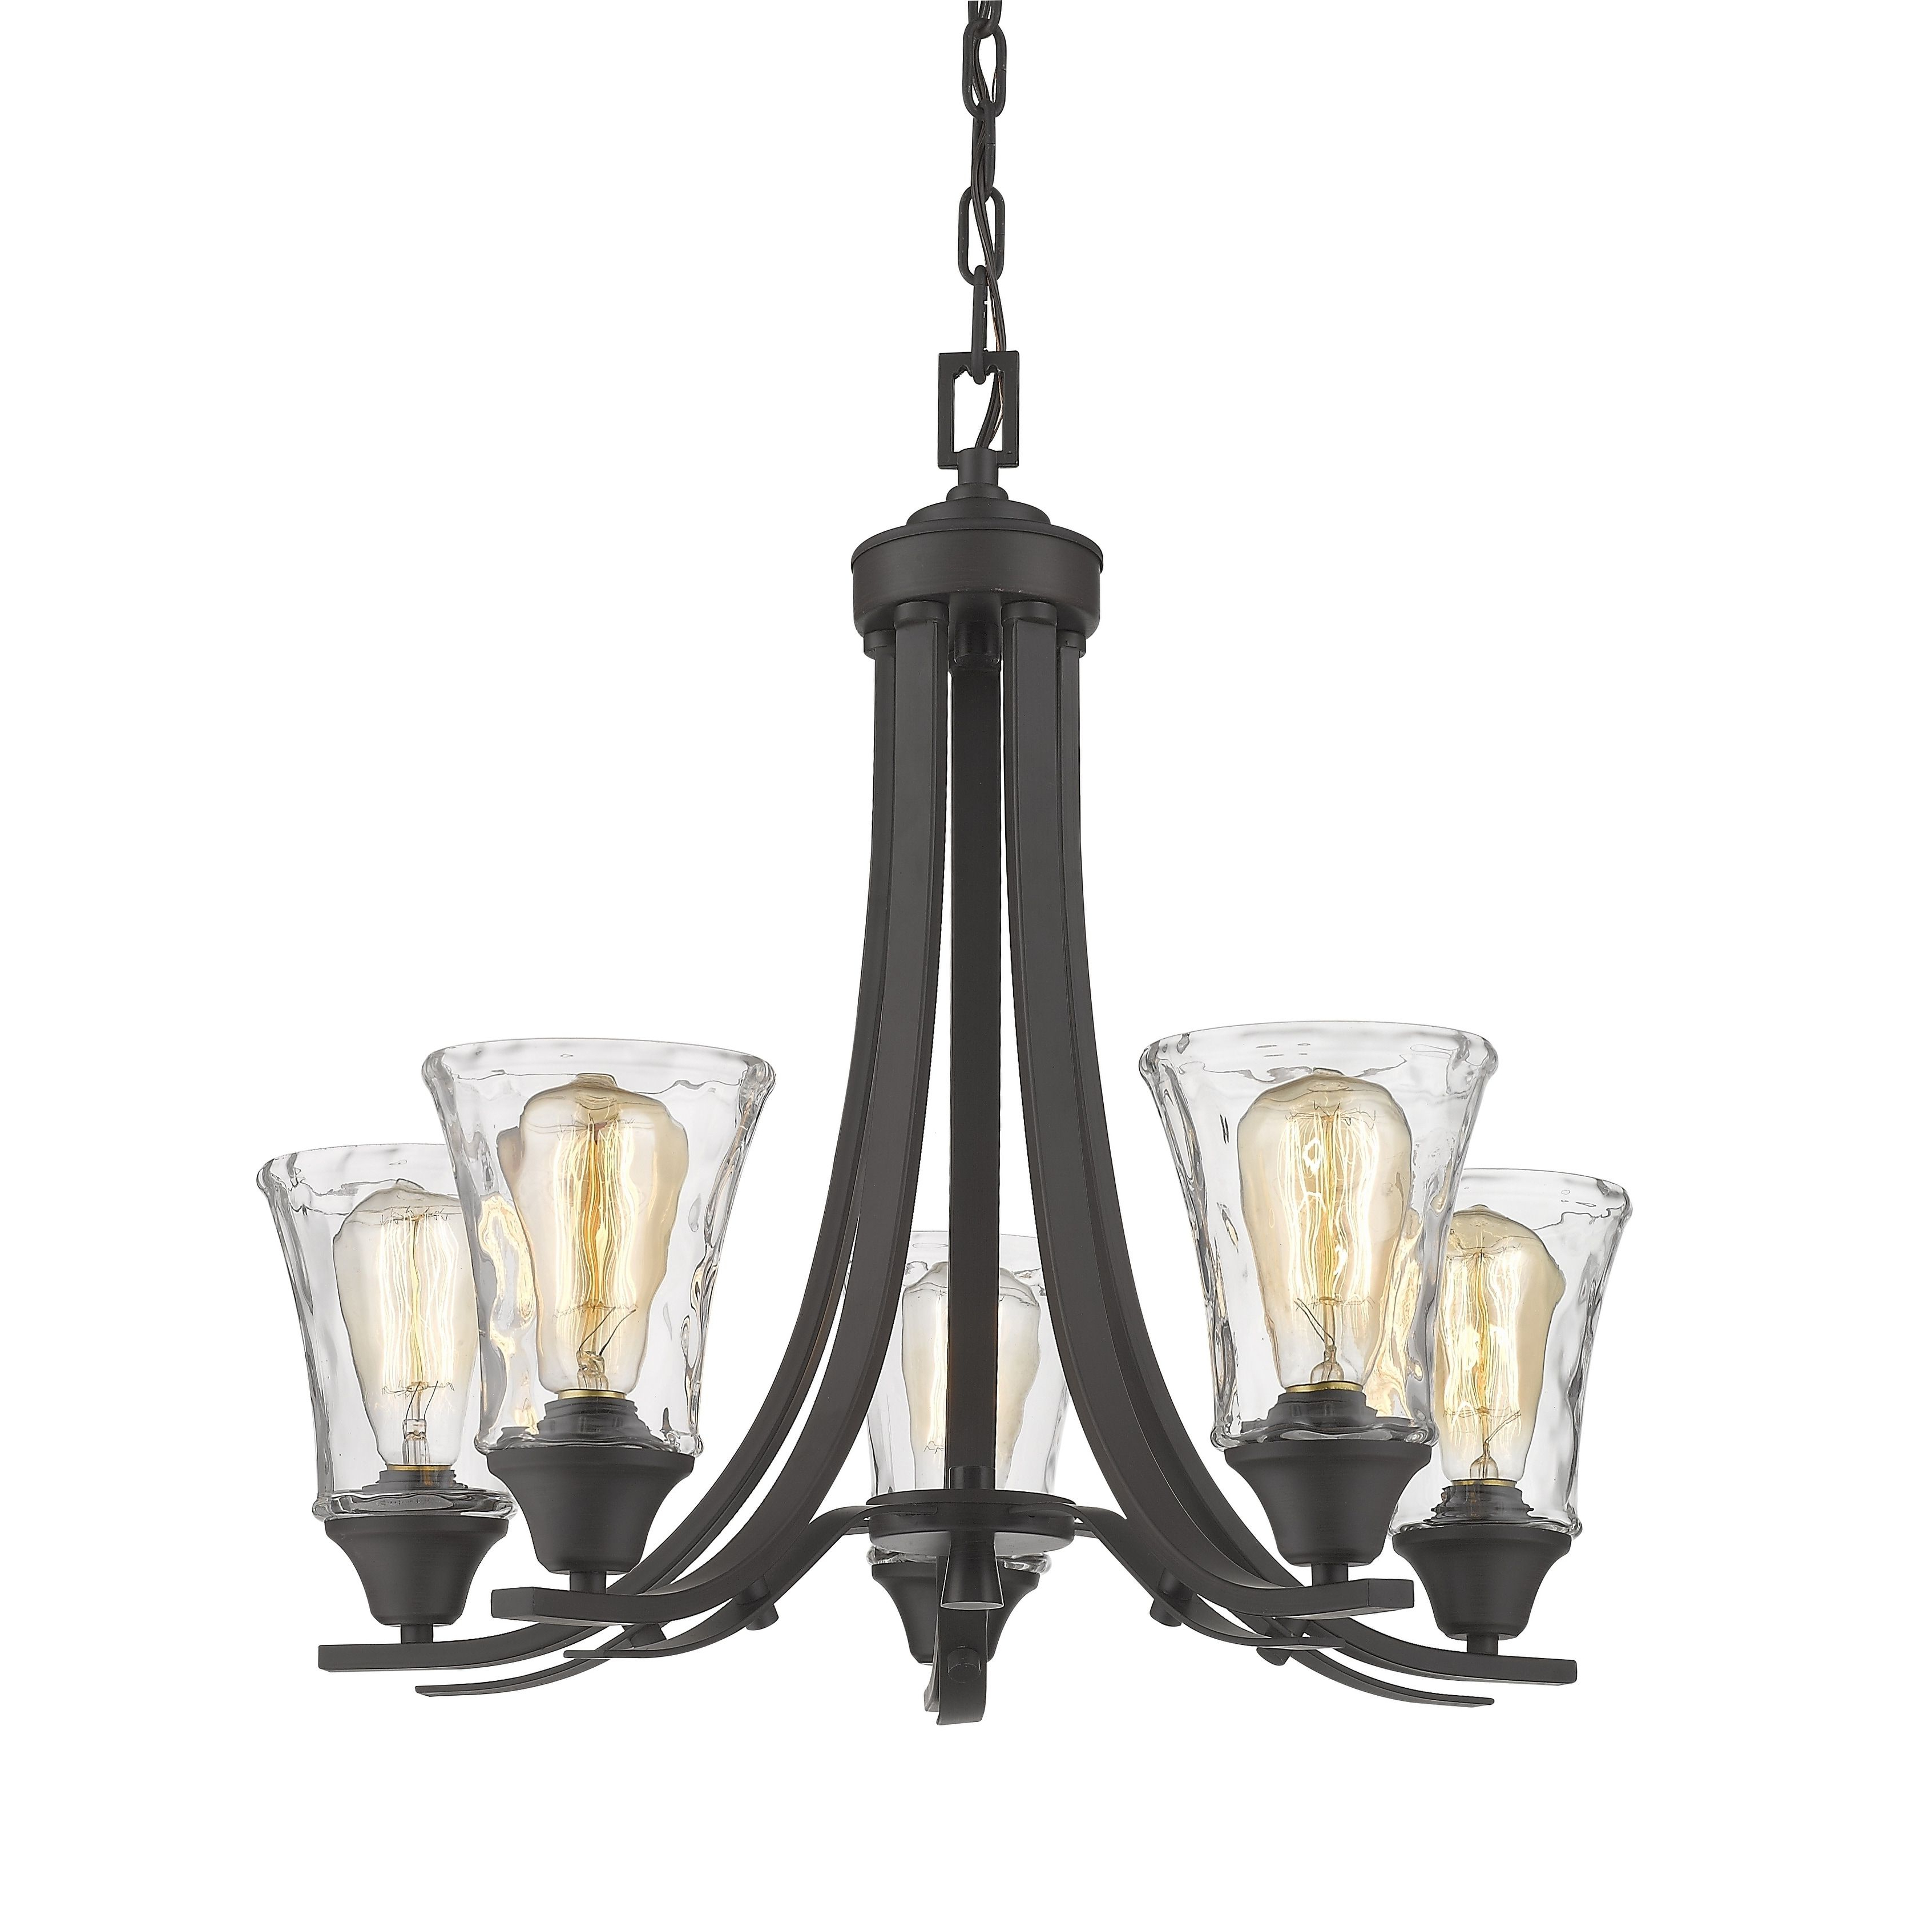 Hayden 5 Light Shaded Chandeliers With Regard To Fashionable Hayden Antique Bronze Finished Metal (Grey) 23 Inch X 21 (Gallery 7 of 25)